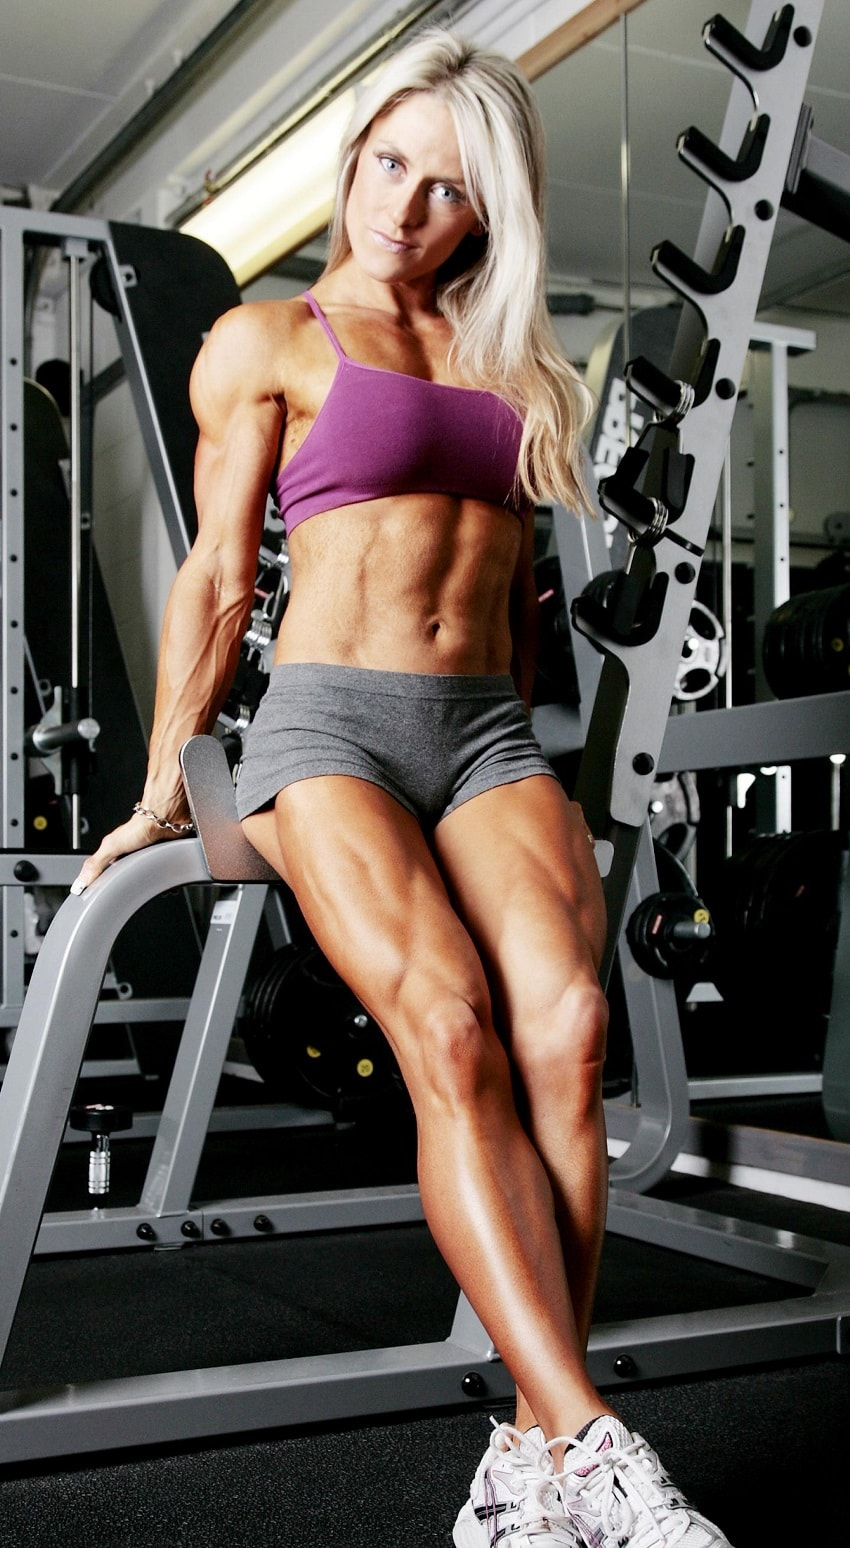 Louise Rogers sitting on a machine in gym, as she shows her lean legs, abs, and arms